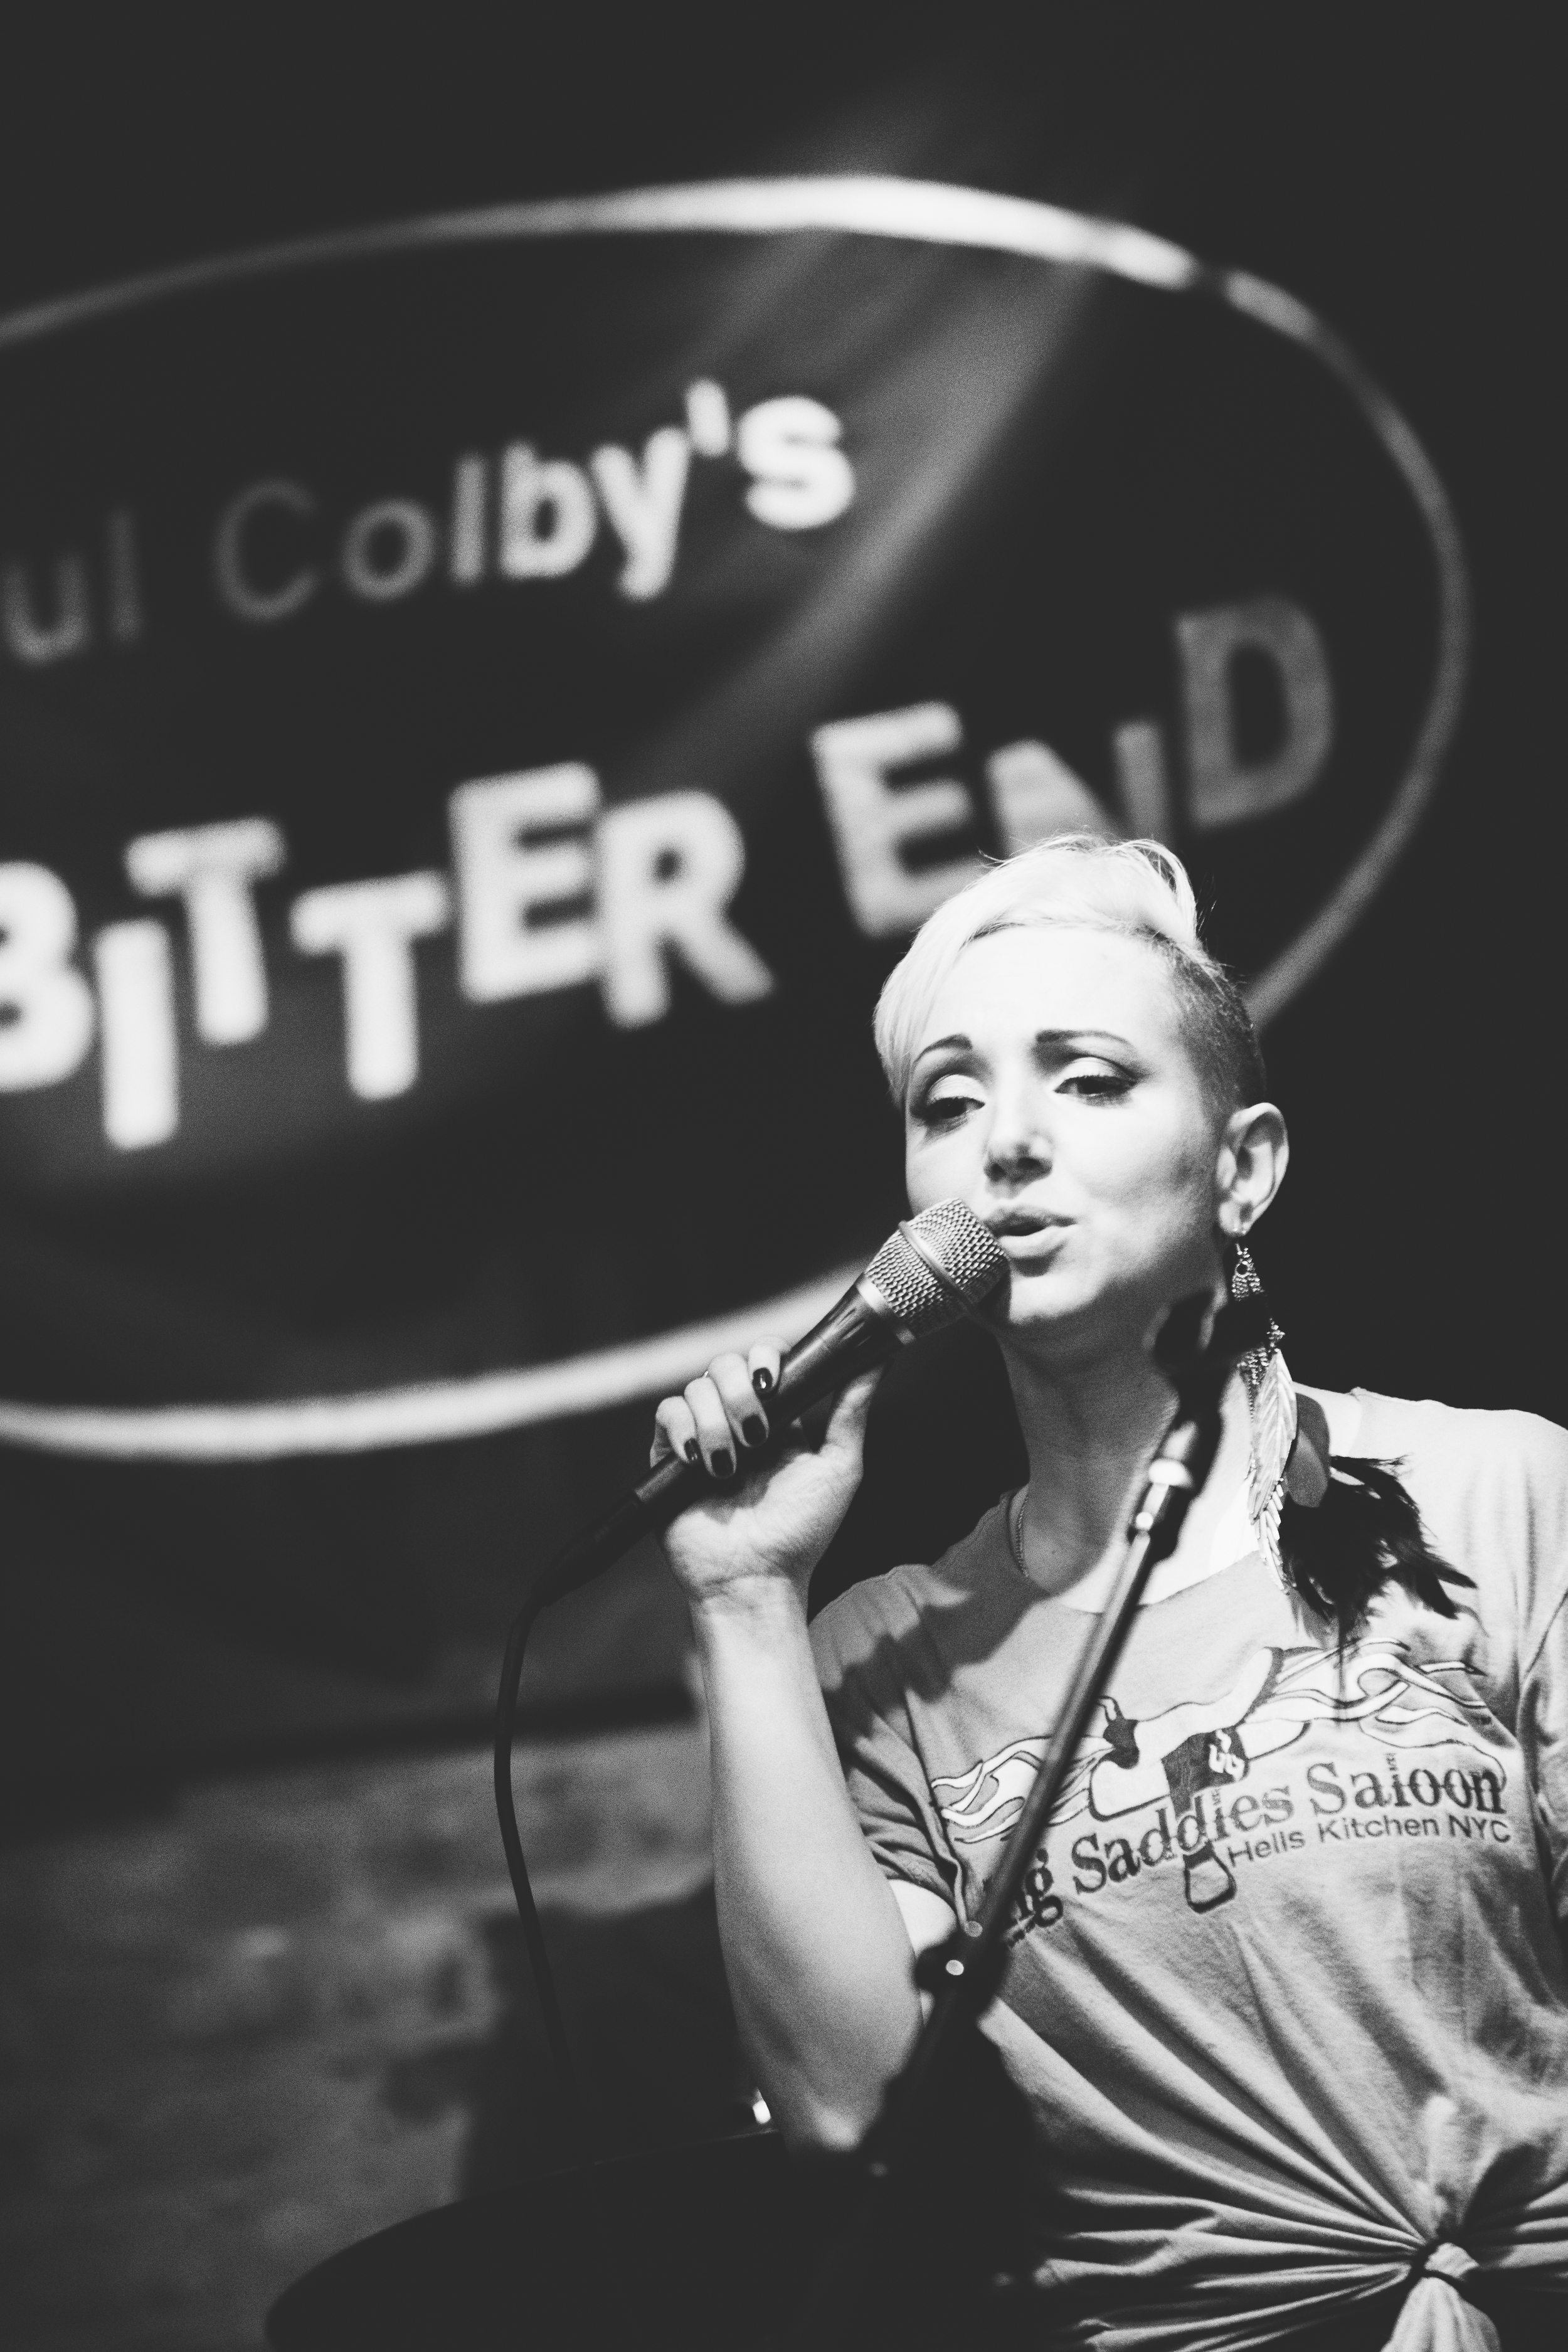 Angie Atkinson - The Bitter End, 1.29.2015